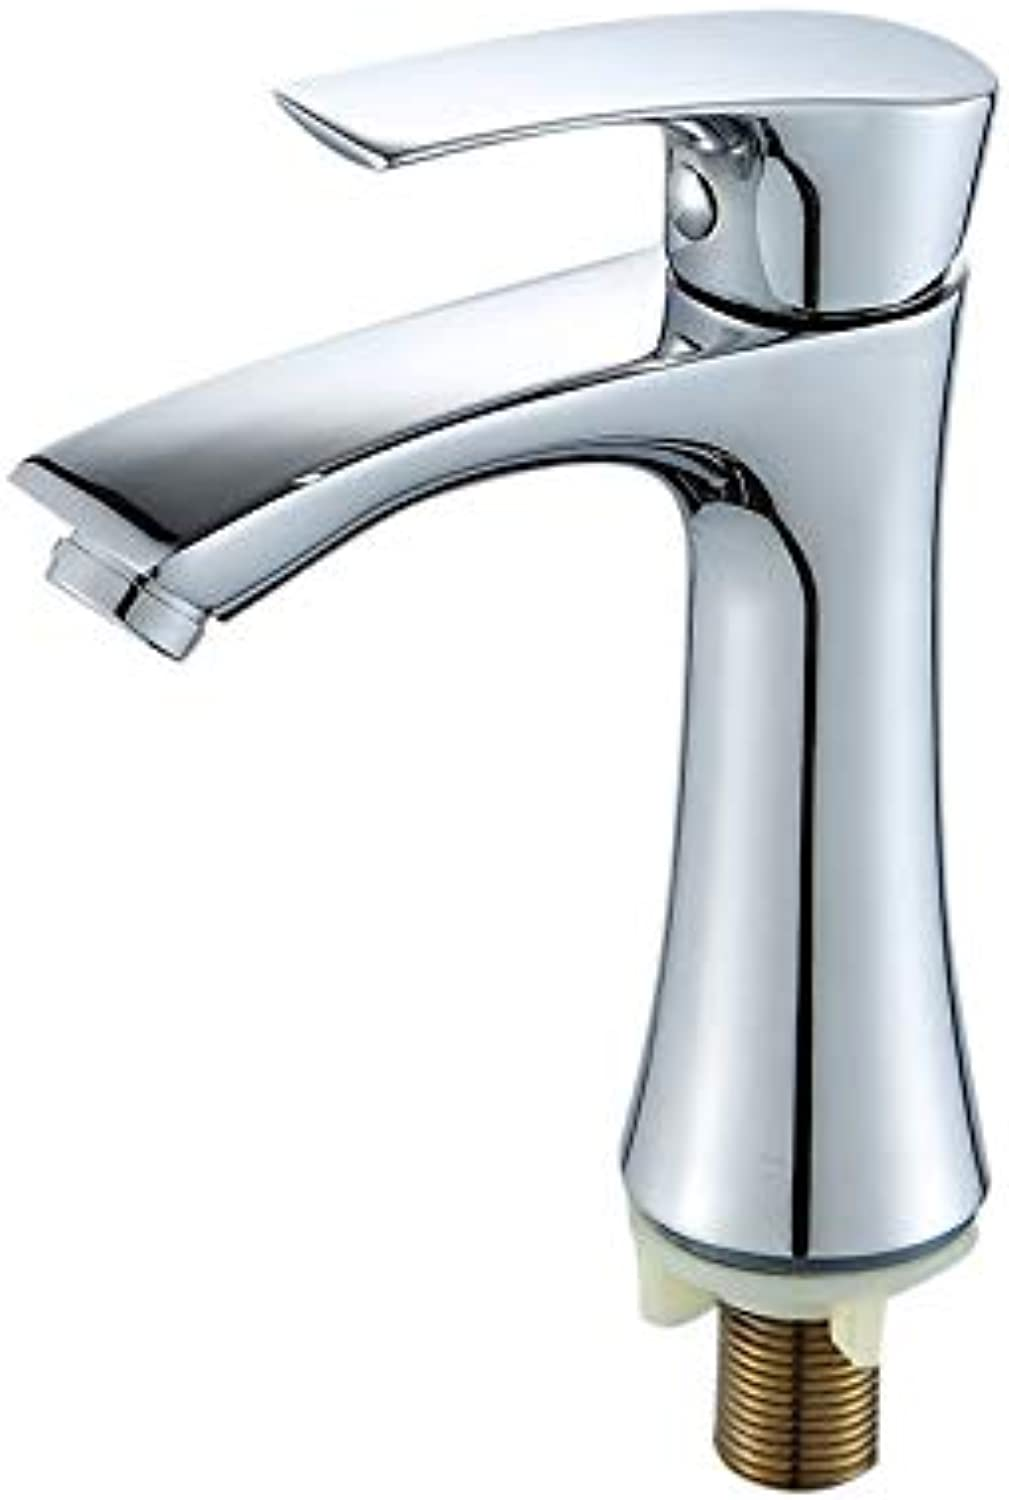 redOOY Taps Bathroom Sink Taps Shower Tapsbasin Faucet Faucet Basin Faucet Small Chrome Wash Basin Above Counter Basin